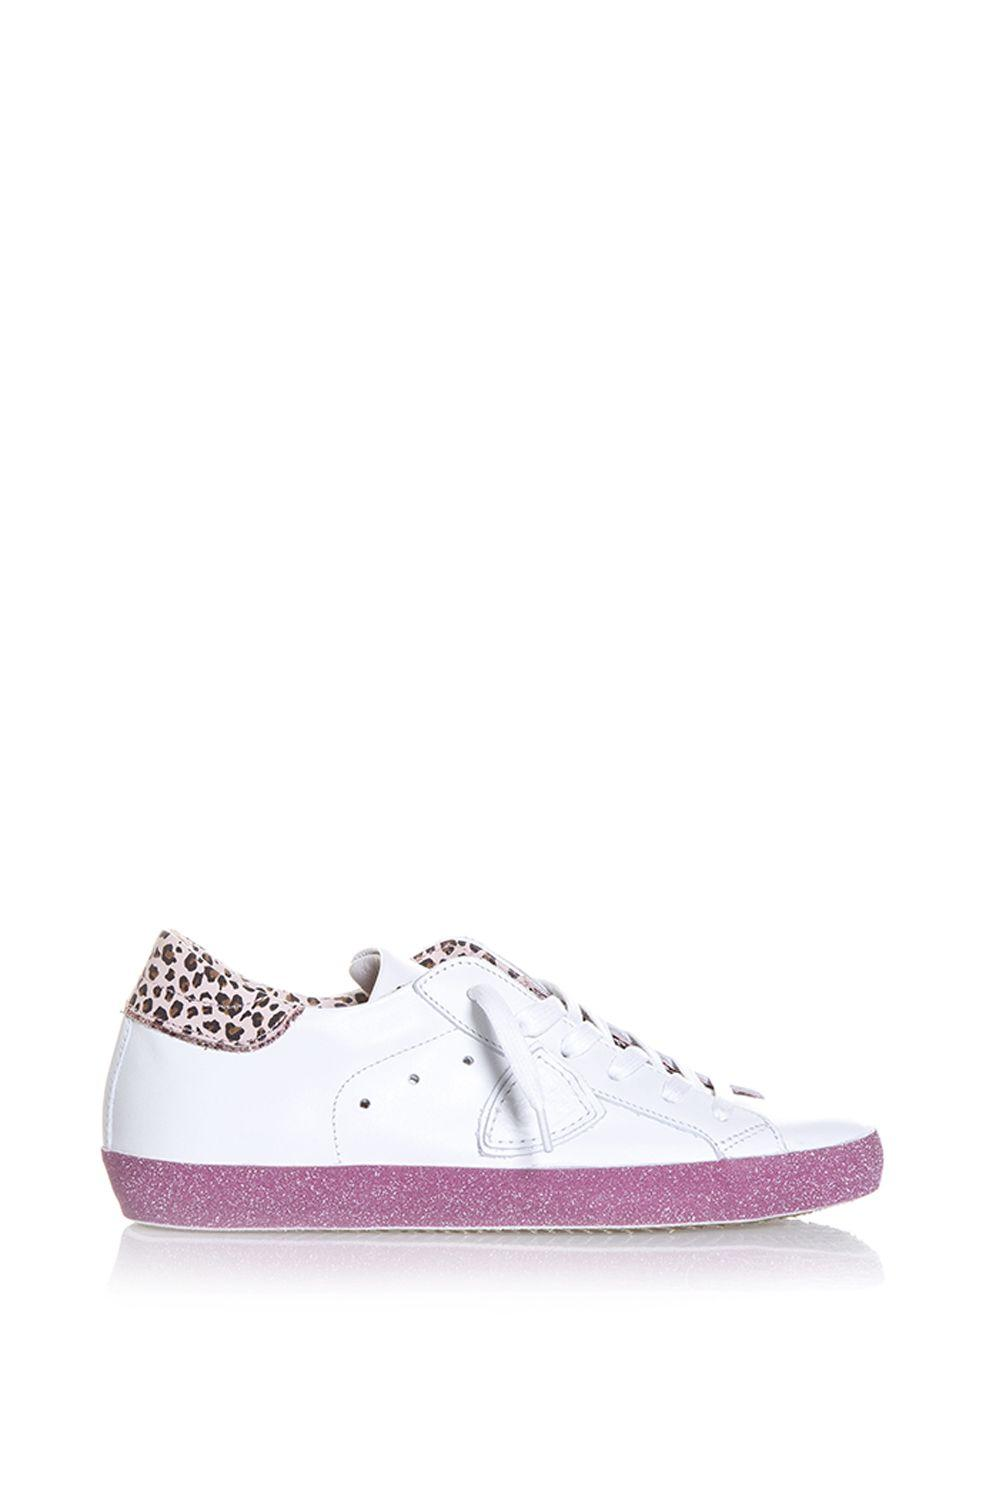 Philippe Model Glitter Sneakers In White/pink